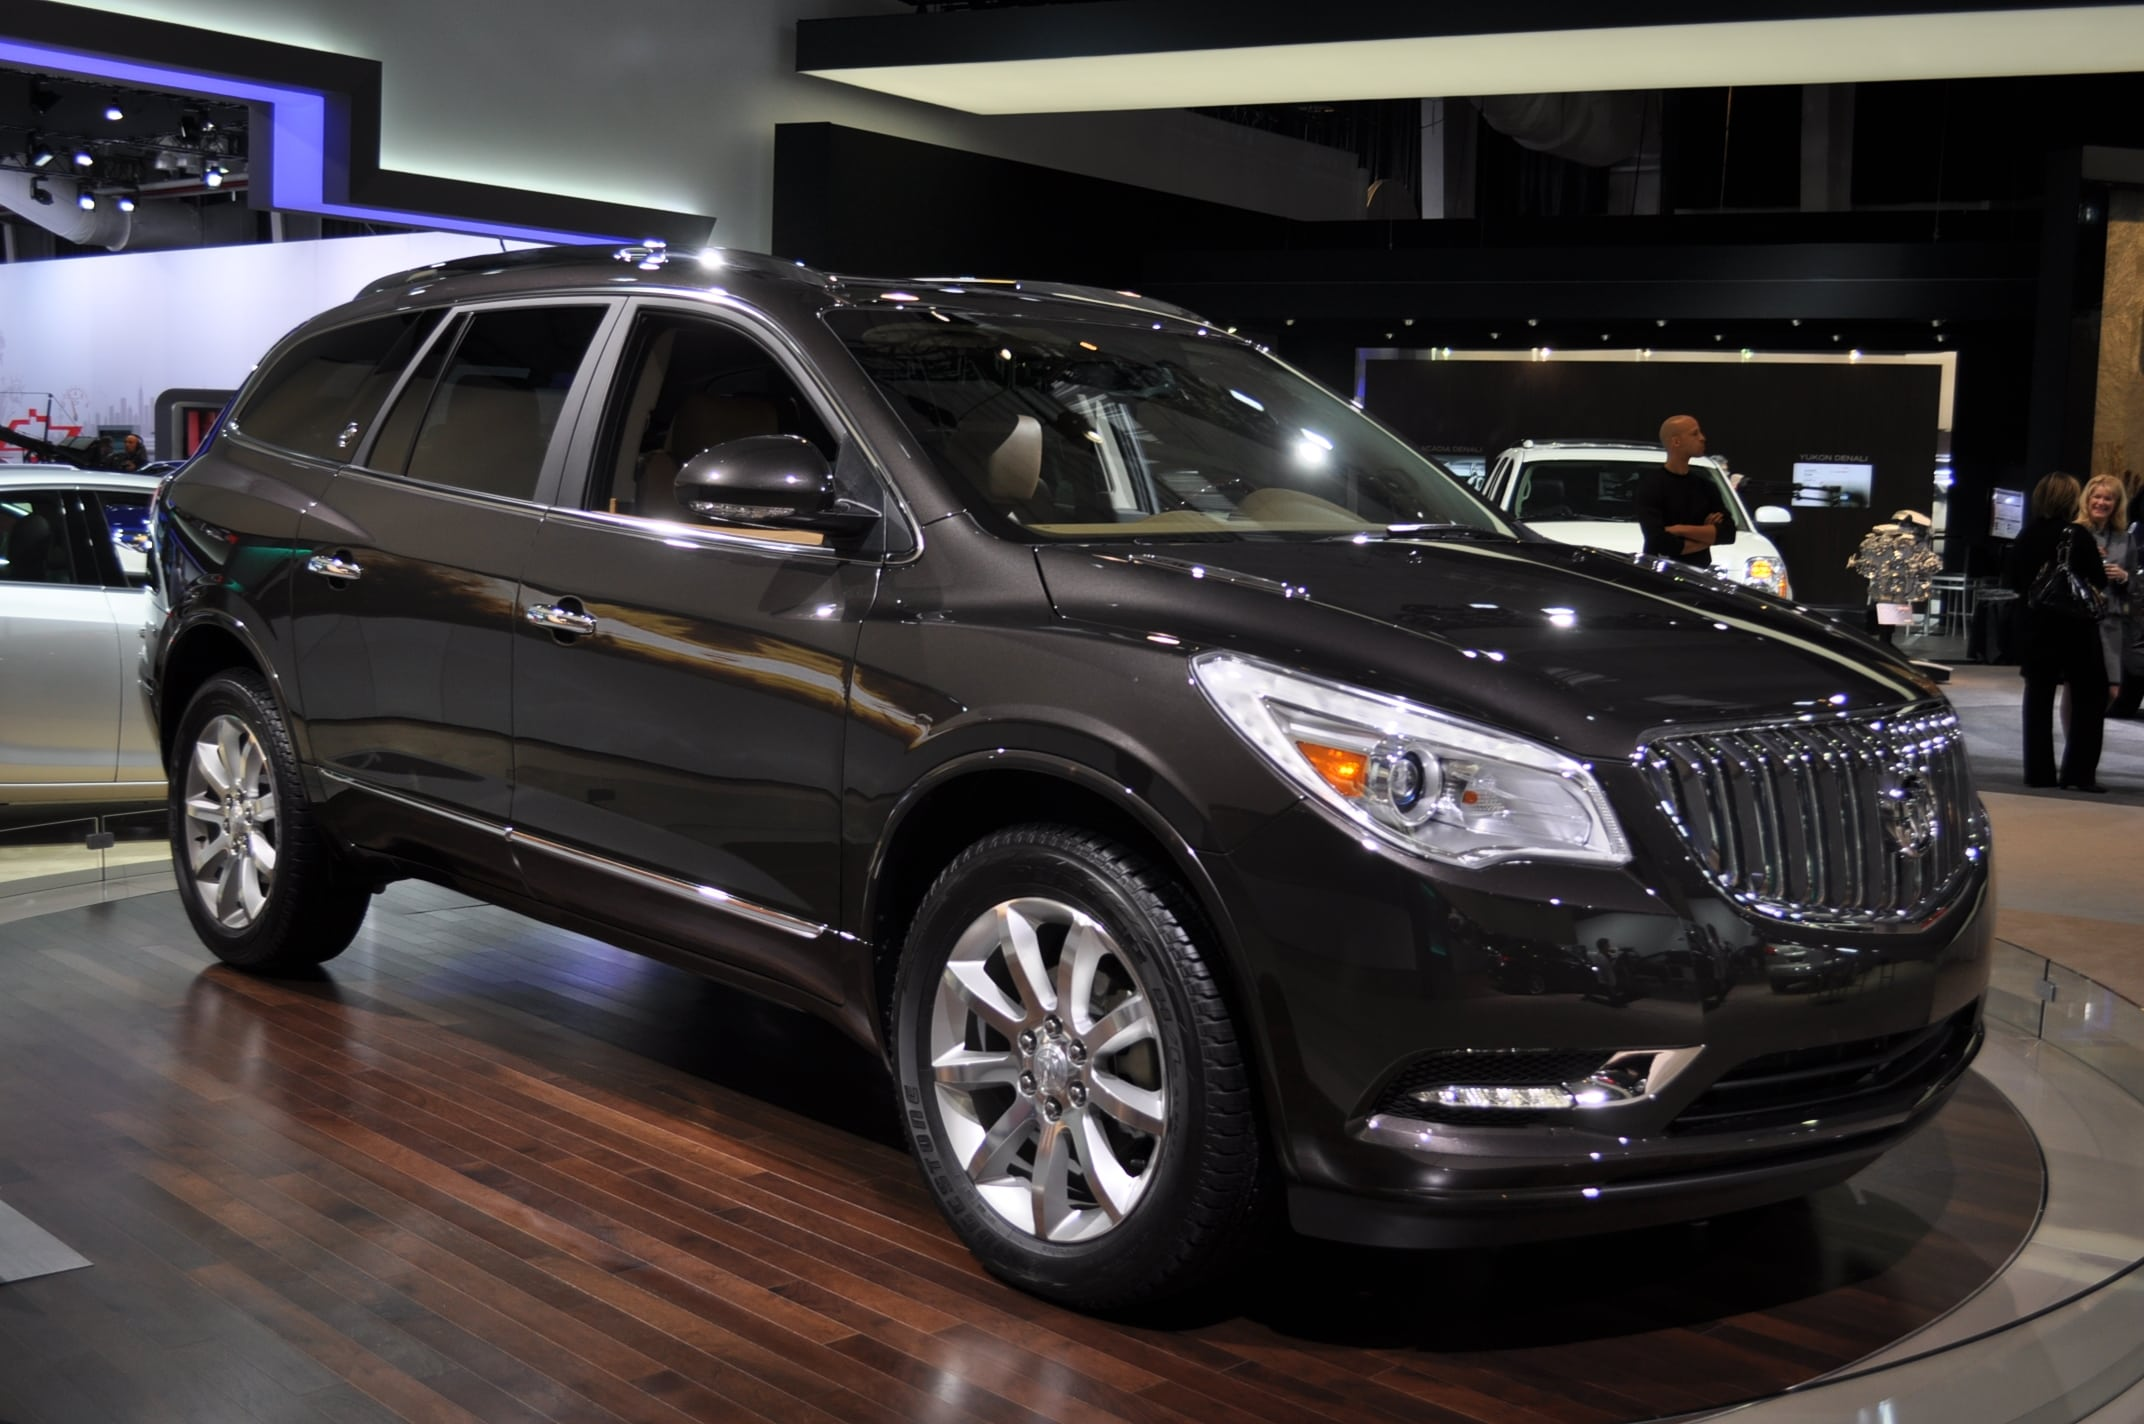 2020 Buick Enclave Specs, Redesign,and Release Date >> 2020 Buick Enclave Concept, Redesign, and Price | SUV Models